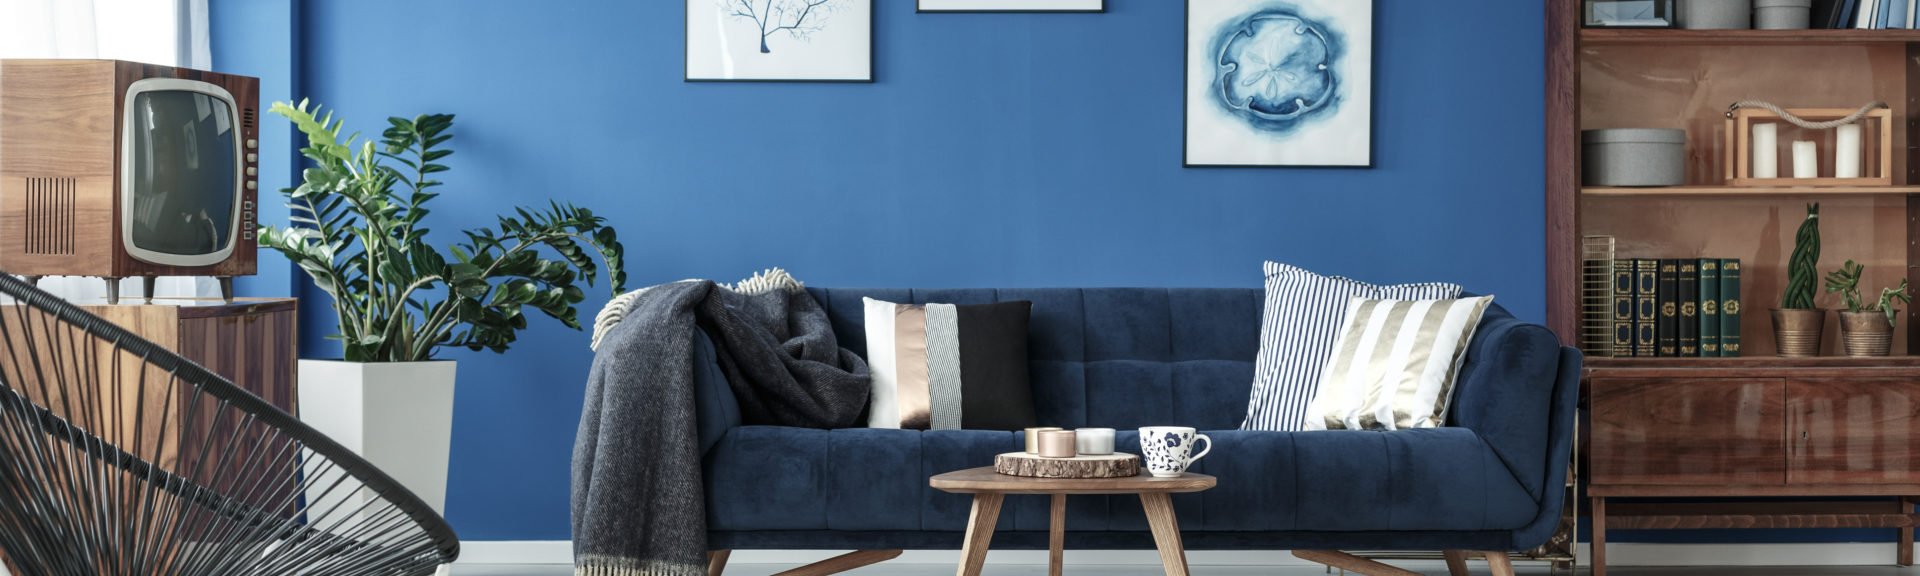 Modern livingroom with blue painted wall